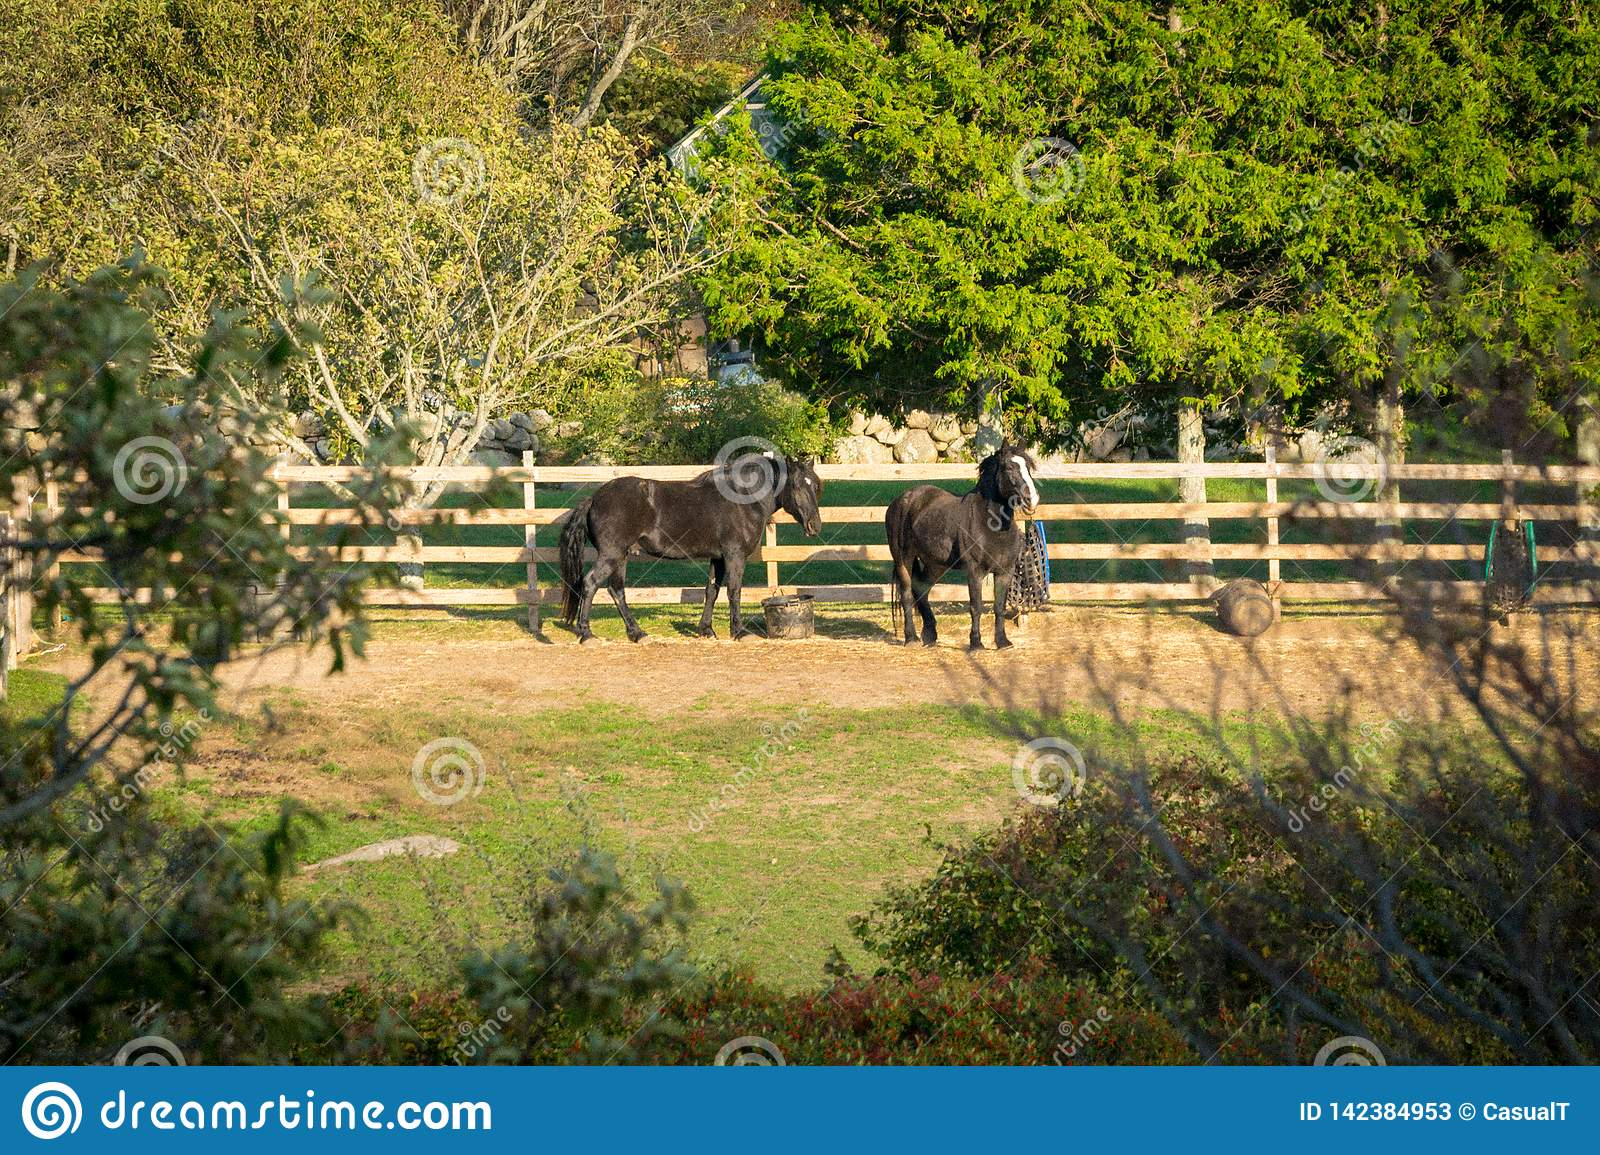 Two beautiful black horses, relaxing in their fenced-in corral, among trees, bushes, and plenty of grass, on a warm